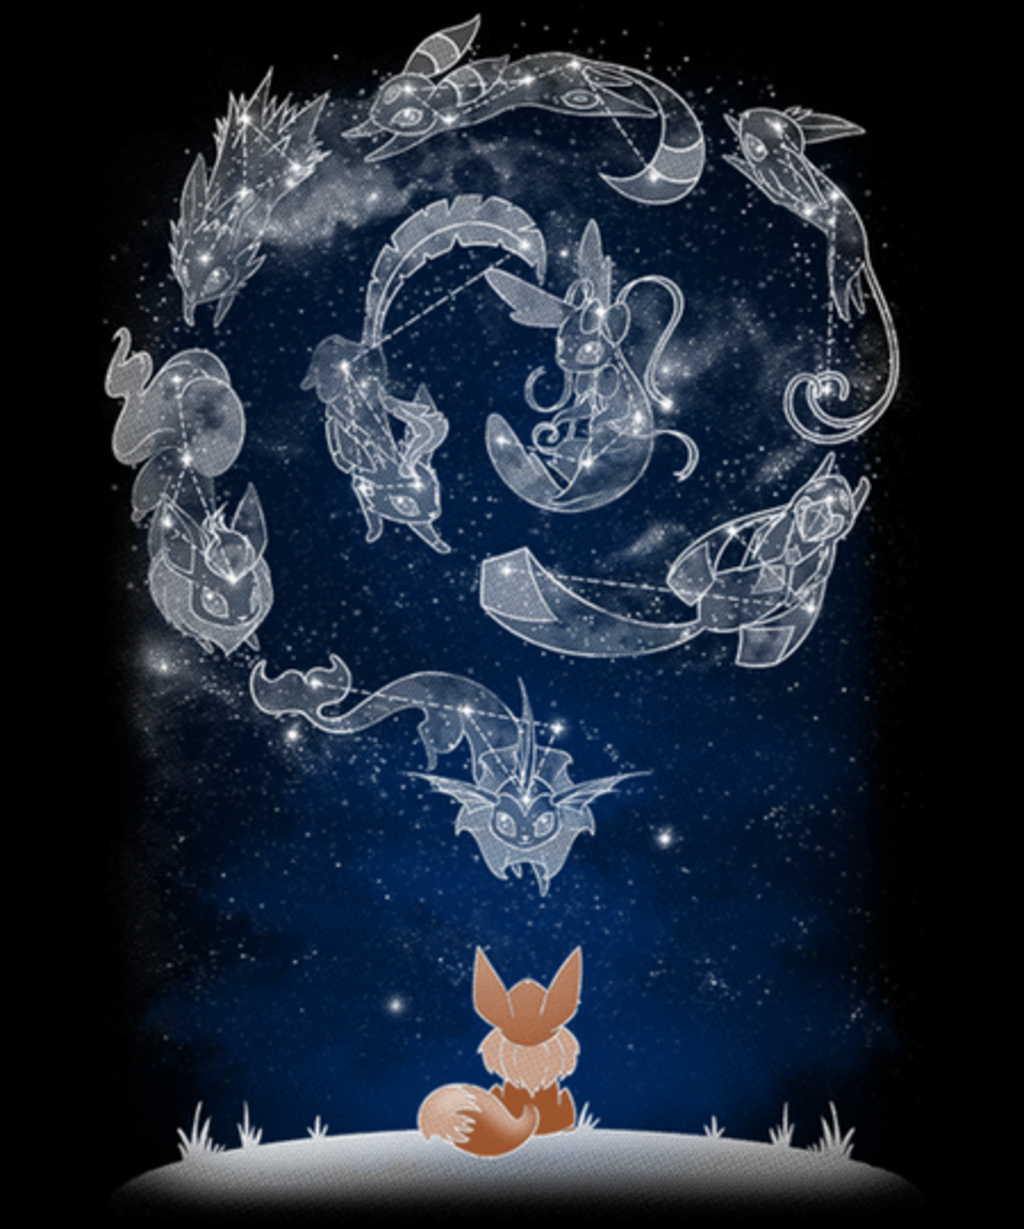 Qwertee: Starry Evolutions